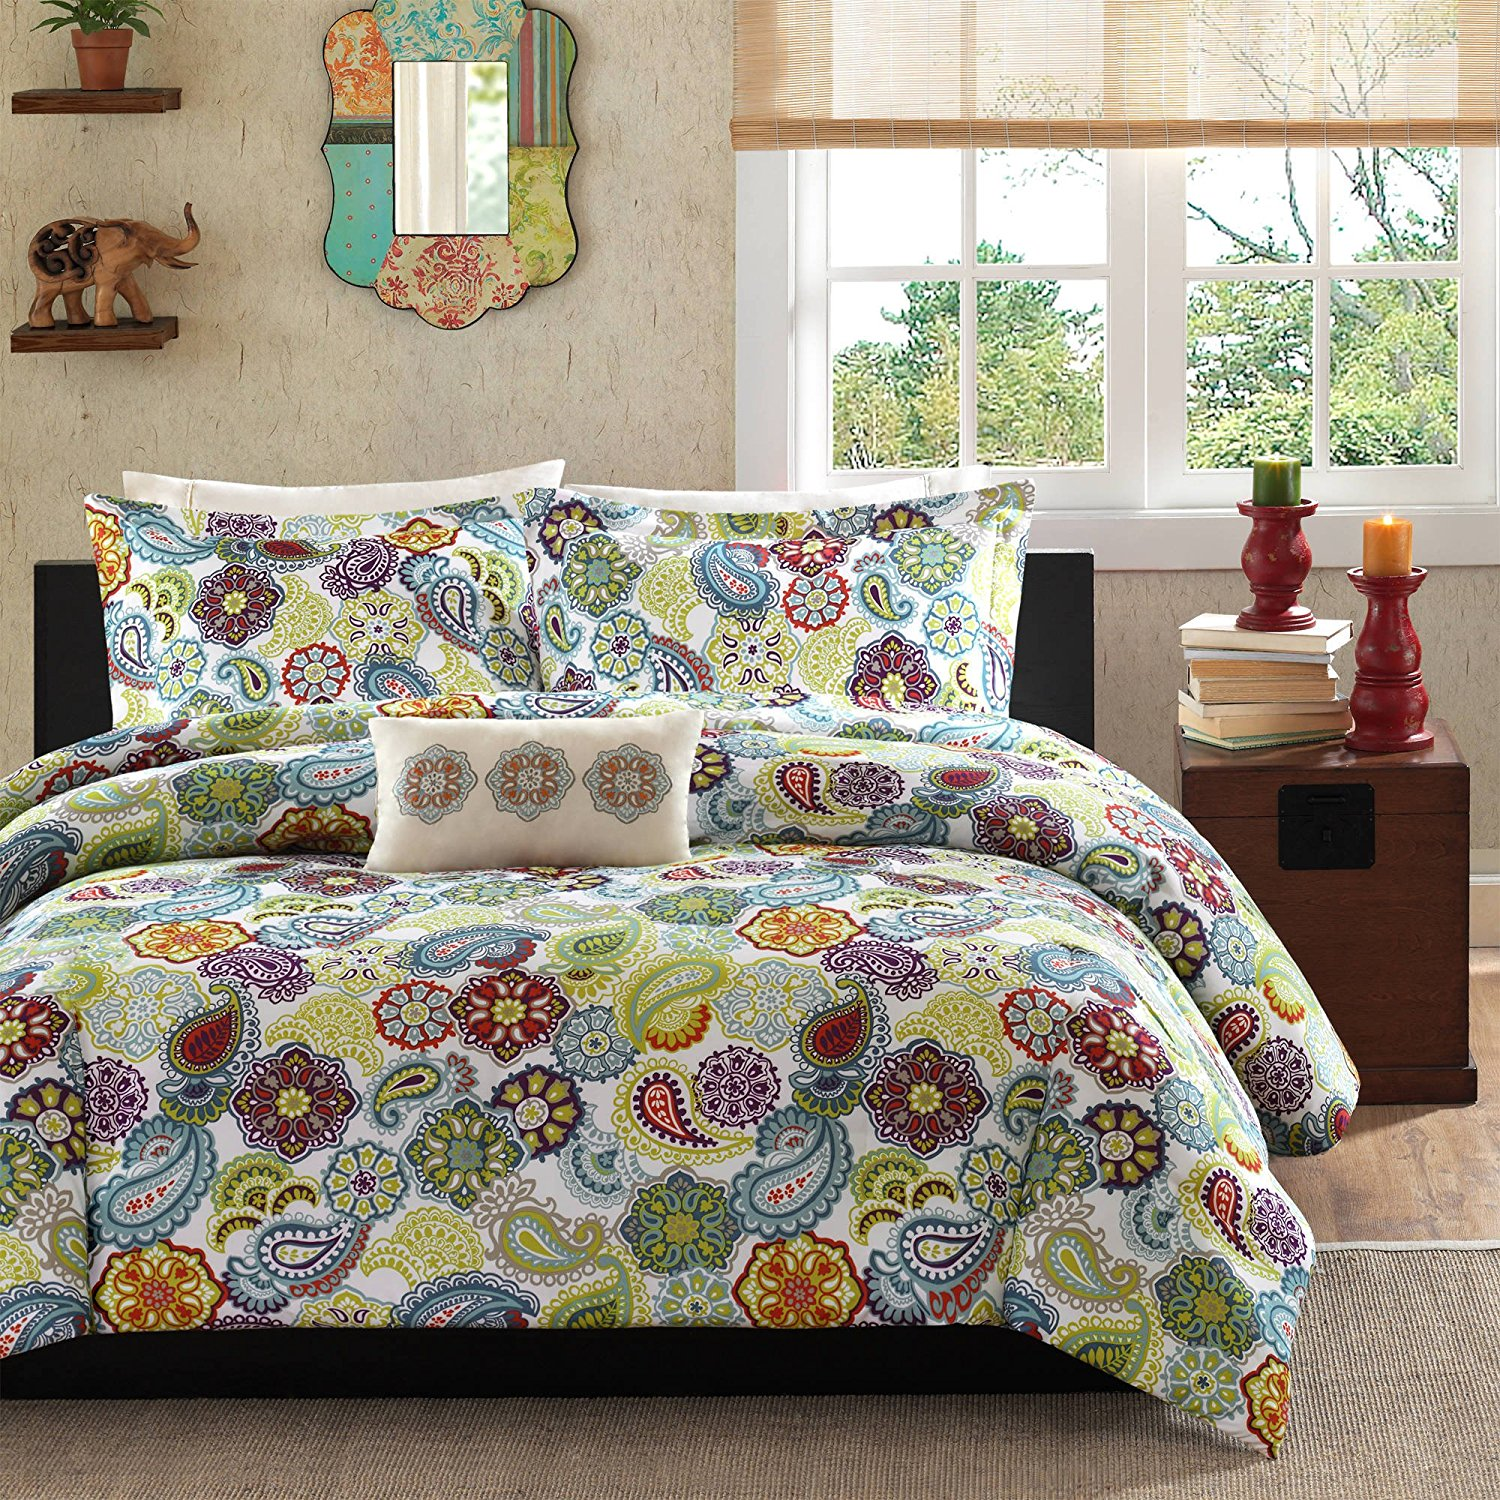 3 Piece Girls Multi Color Paisley Floral Comforter Set Twin Twin Xl, Beautiful Medallion Motif Themed Flower Printed Boho Chic Hippy, Red Blue Yellow Brown Teen Bedding Kids Bedroom, Polyester